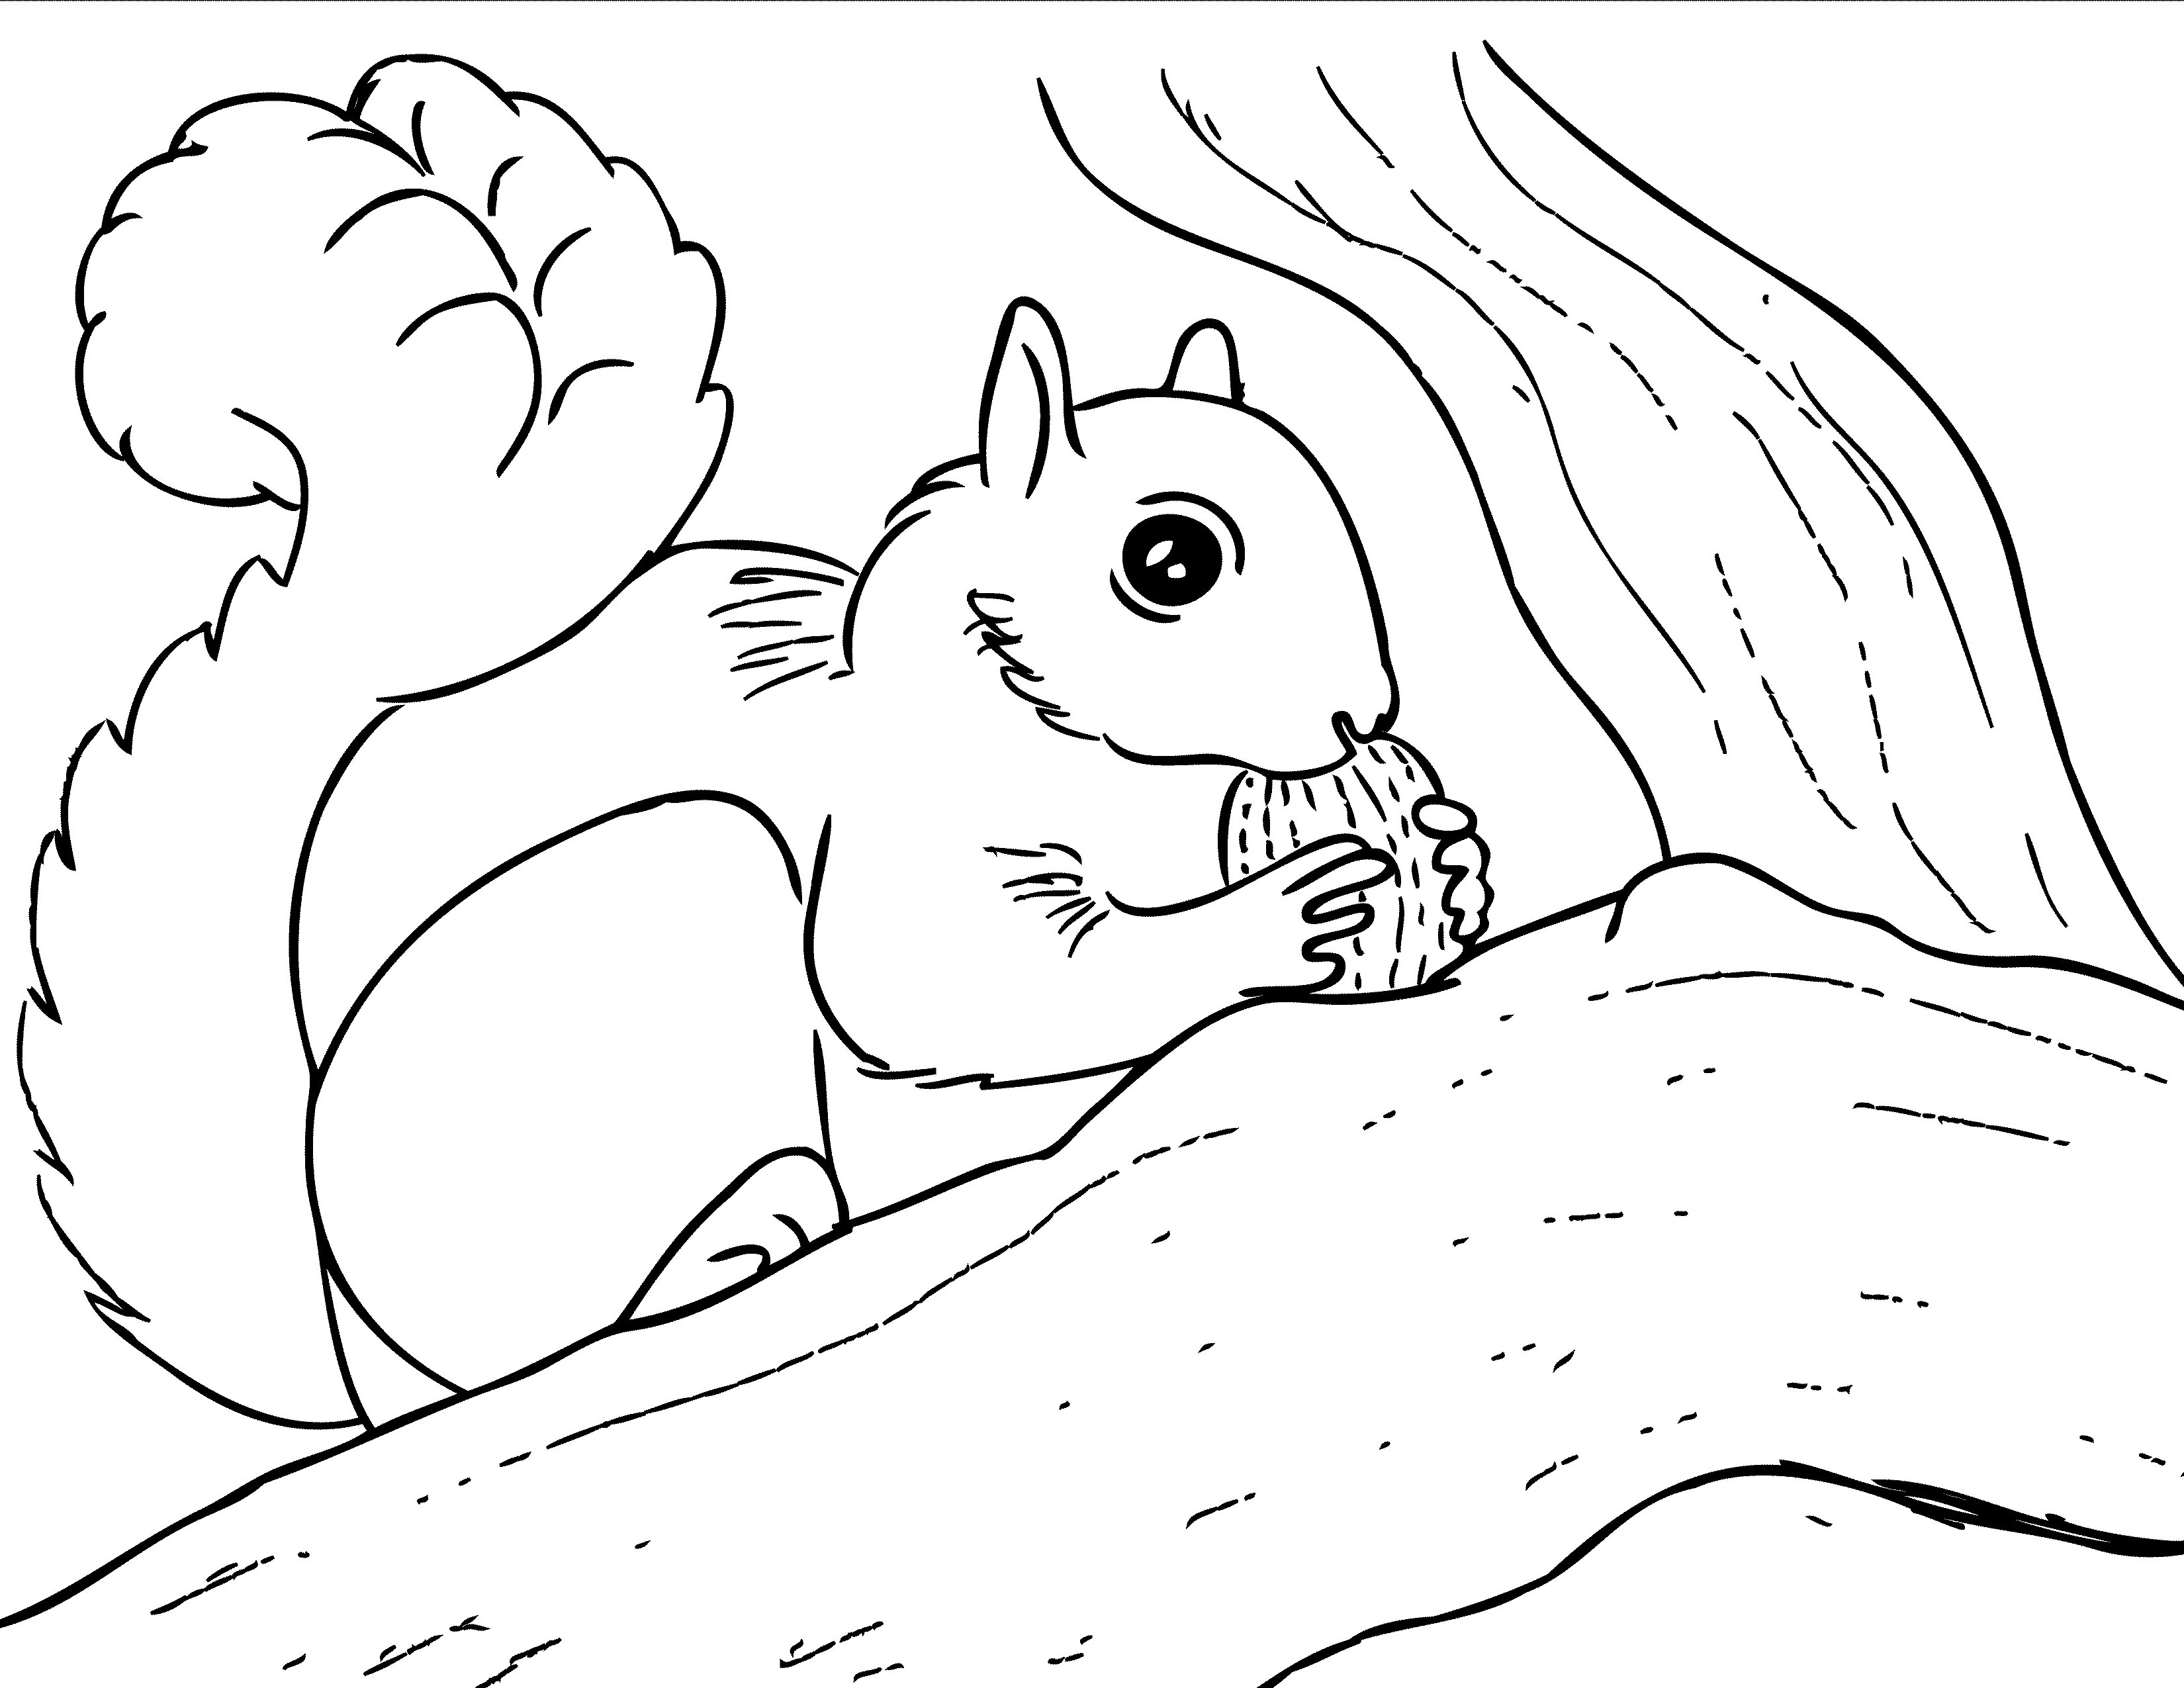 squirrel coloring pages free top 20 printable squirrel coloring pages online coloring coloring pages squirrel free